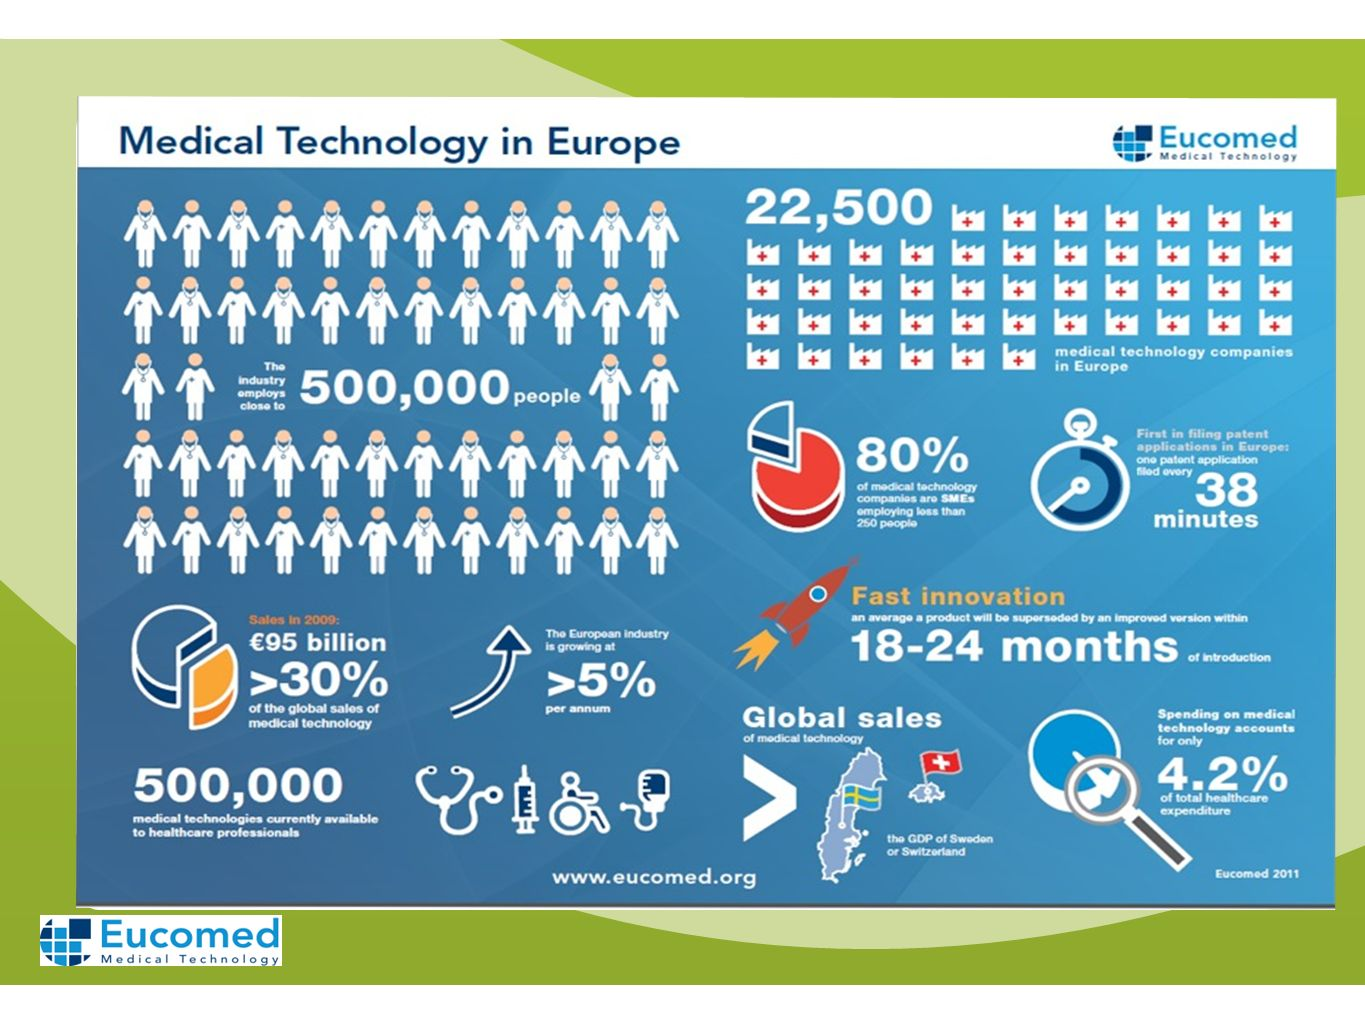 Medical technology industry in the EU